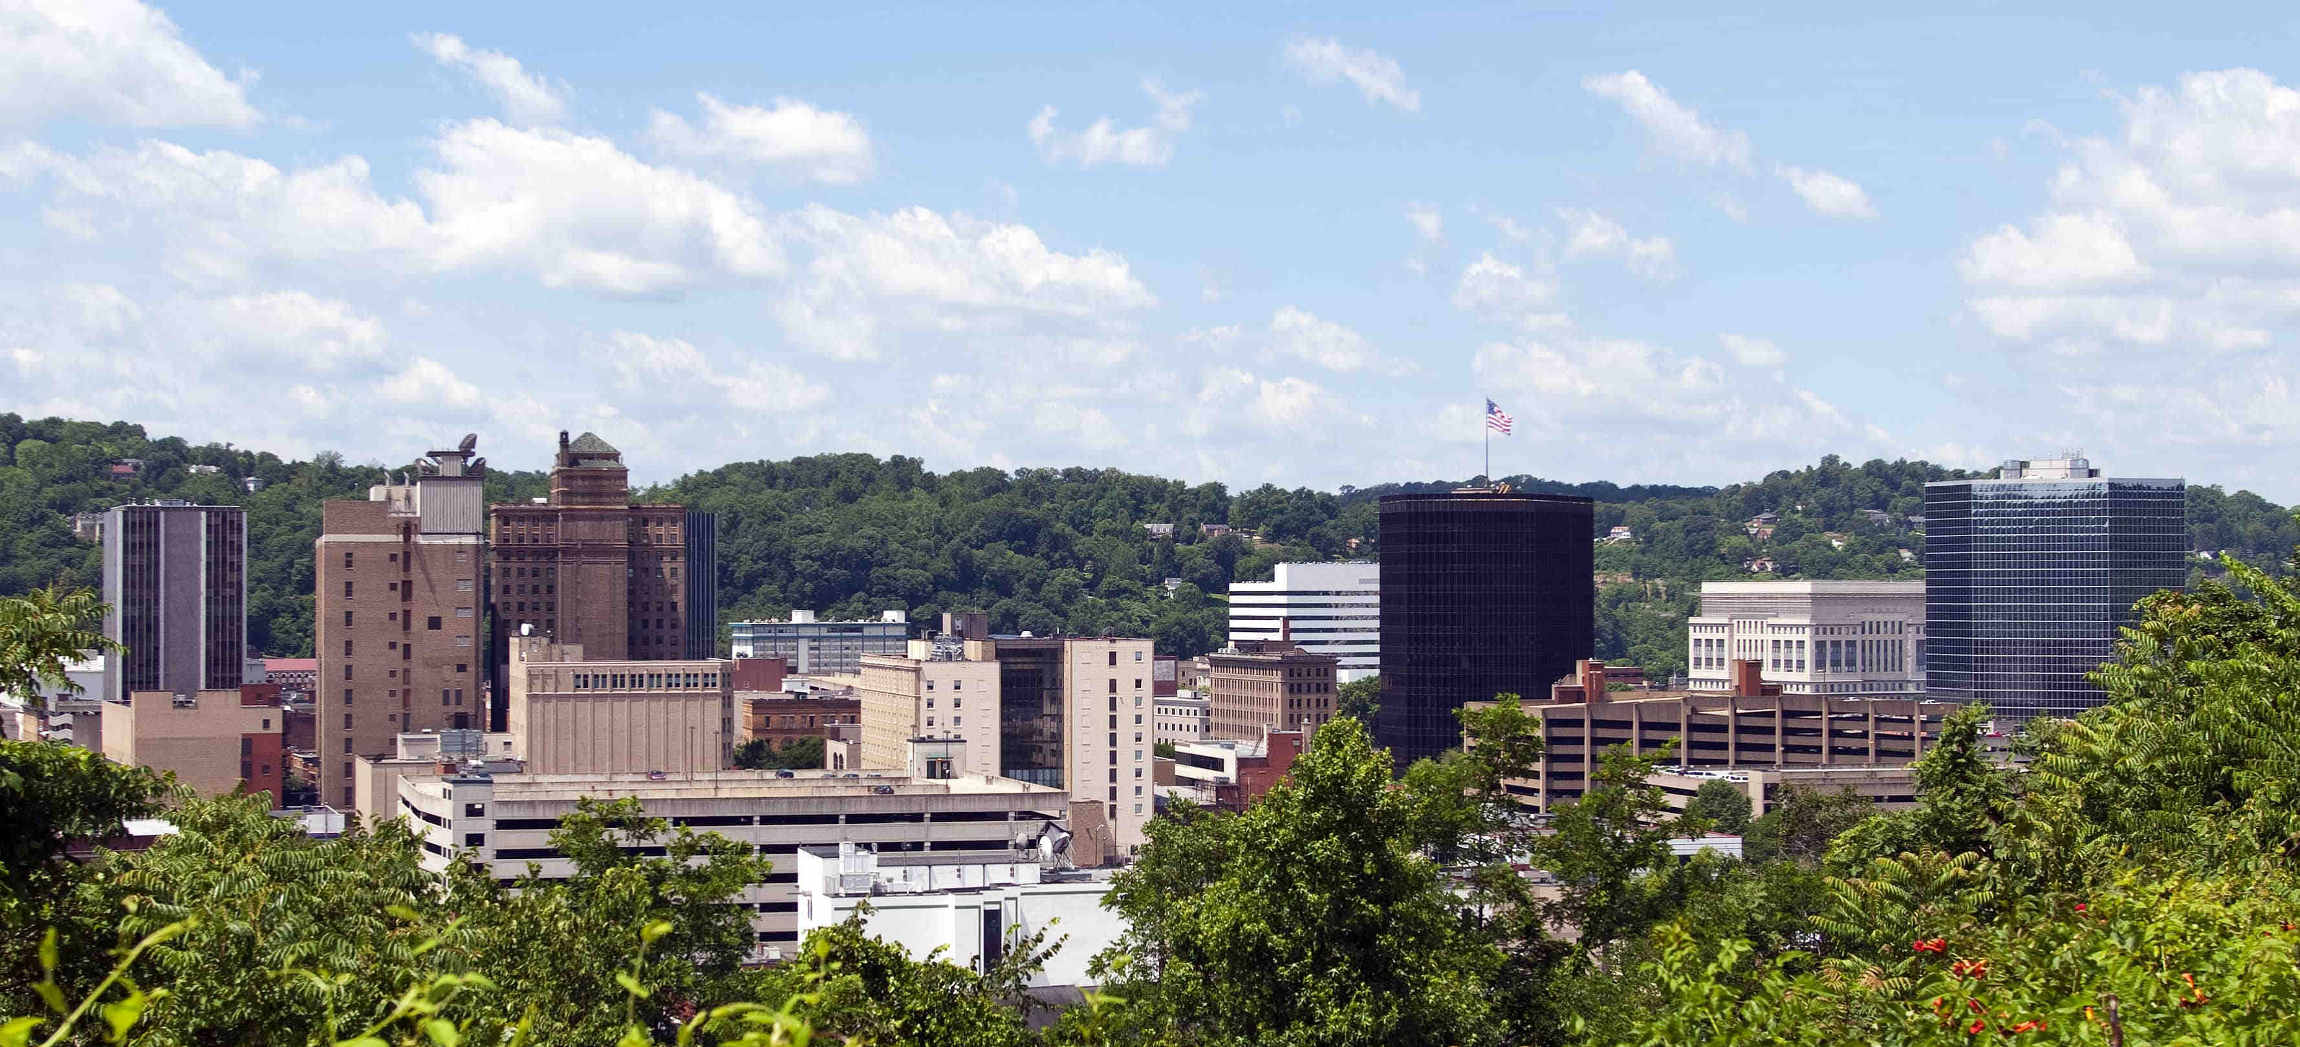 charleston-west-virginia-min.jpg